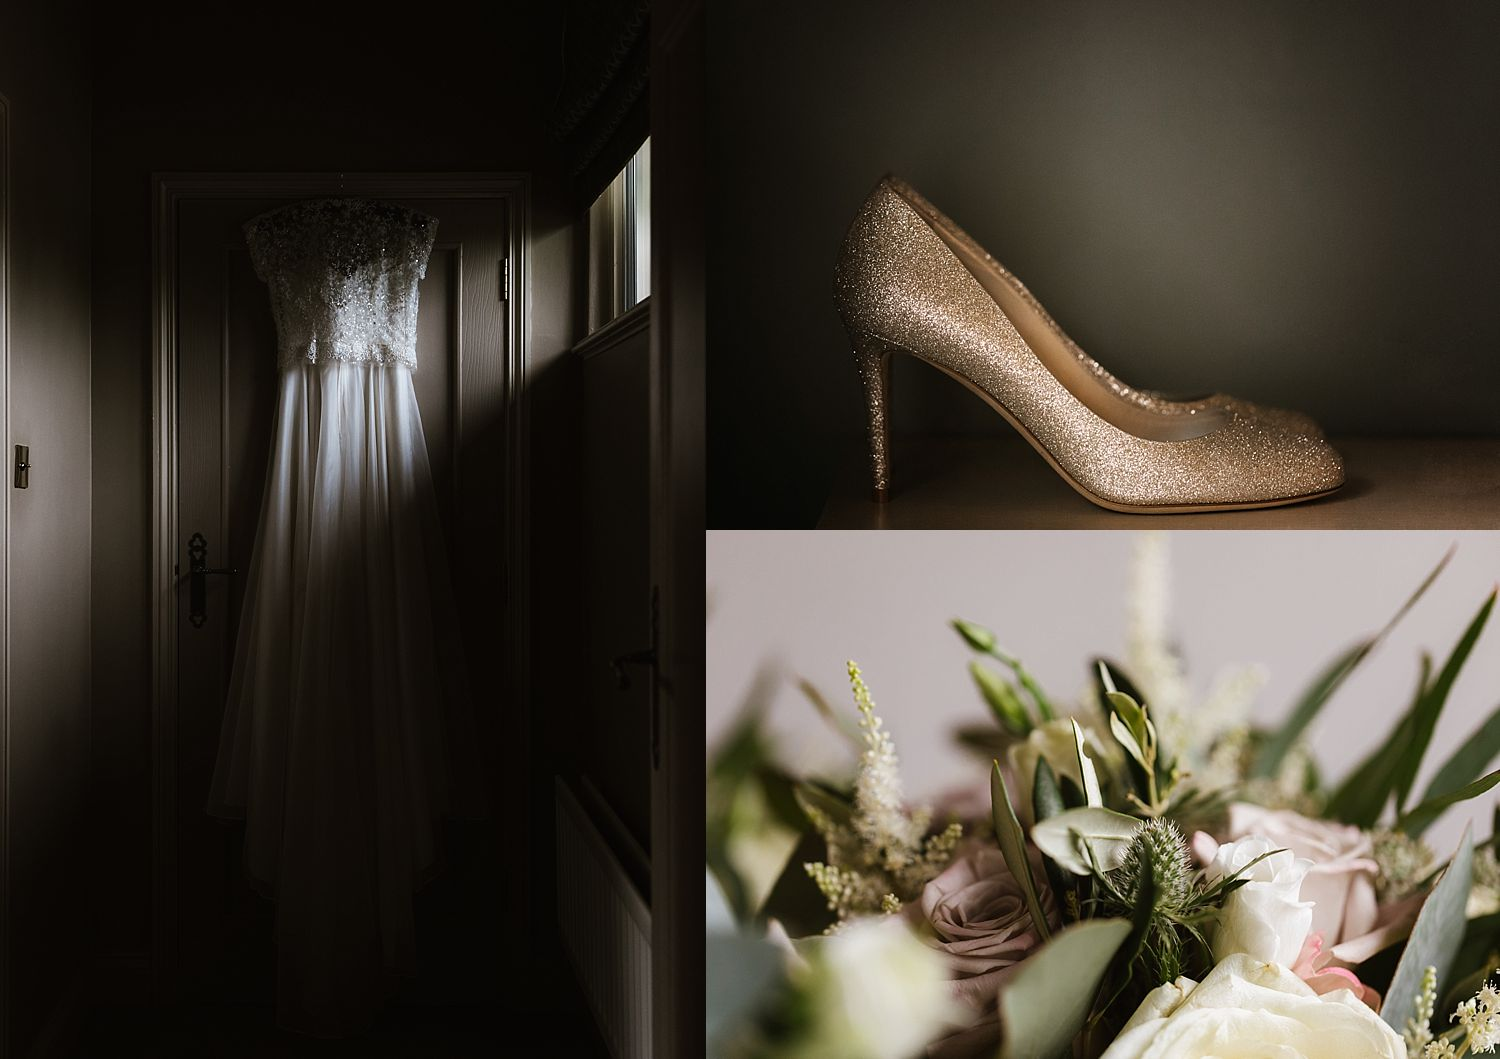 detail images fo Stephanie Allin wedding dress, shoes and flowers by Gabi Burton at The Fine Flowers company